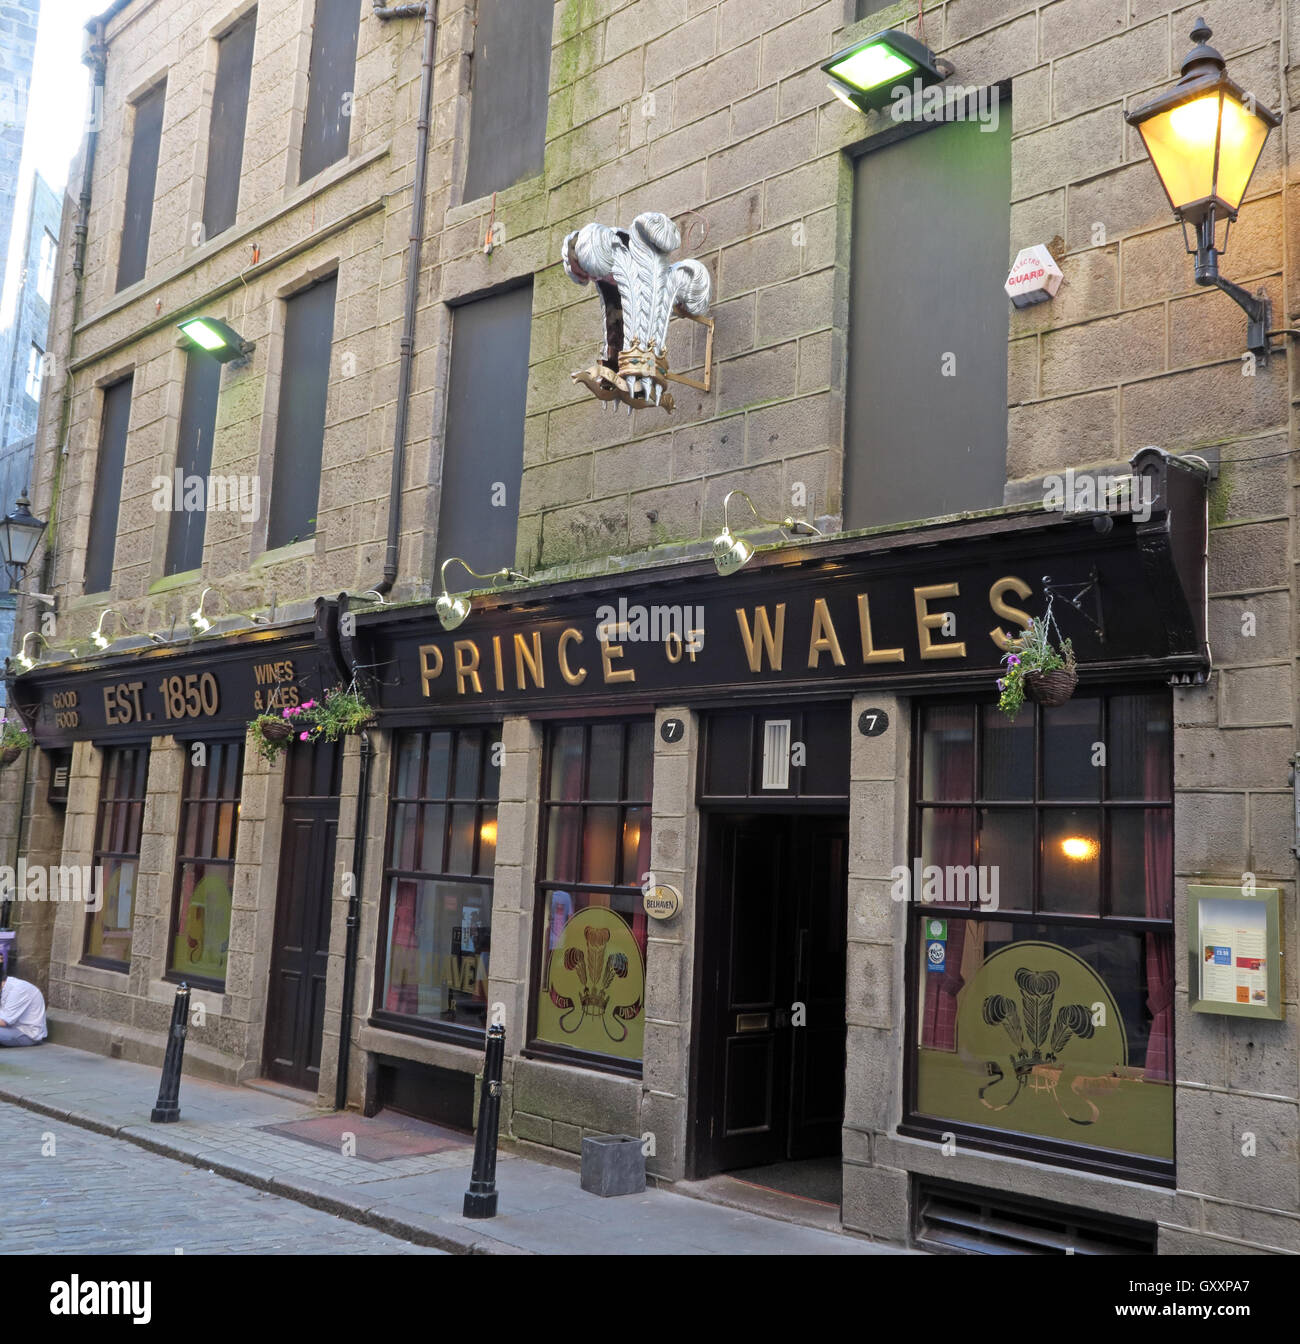 Prince of Wales,Real Ale Pub in Aberdeen, CAMRA and Orkney beers, Scotland, UK Stock Photo